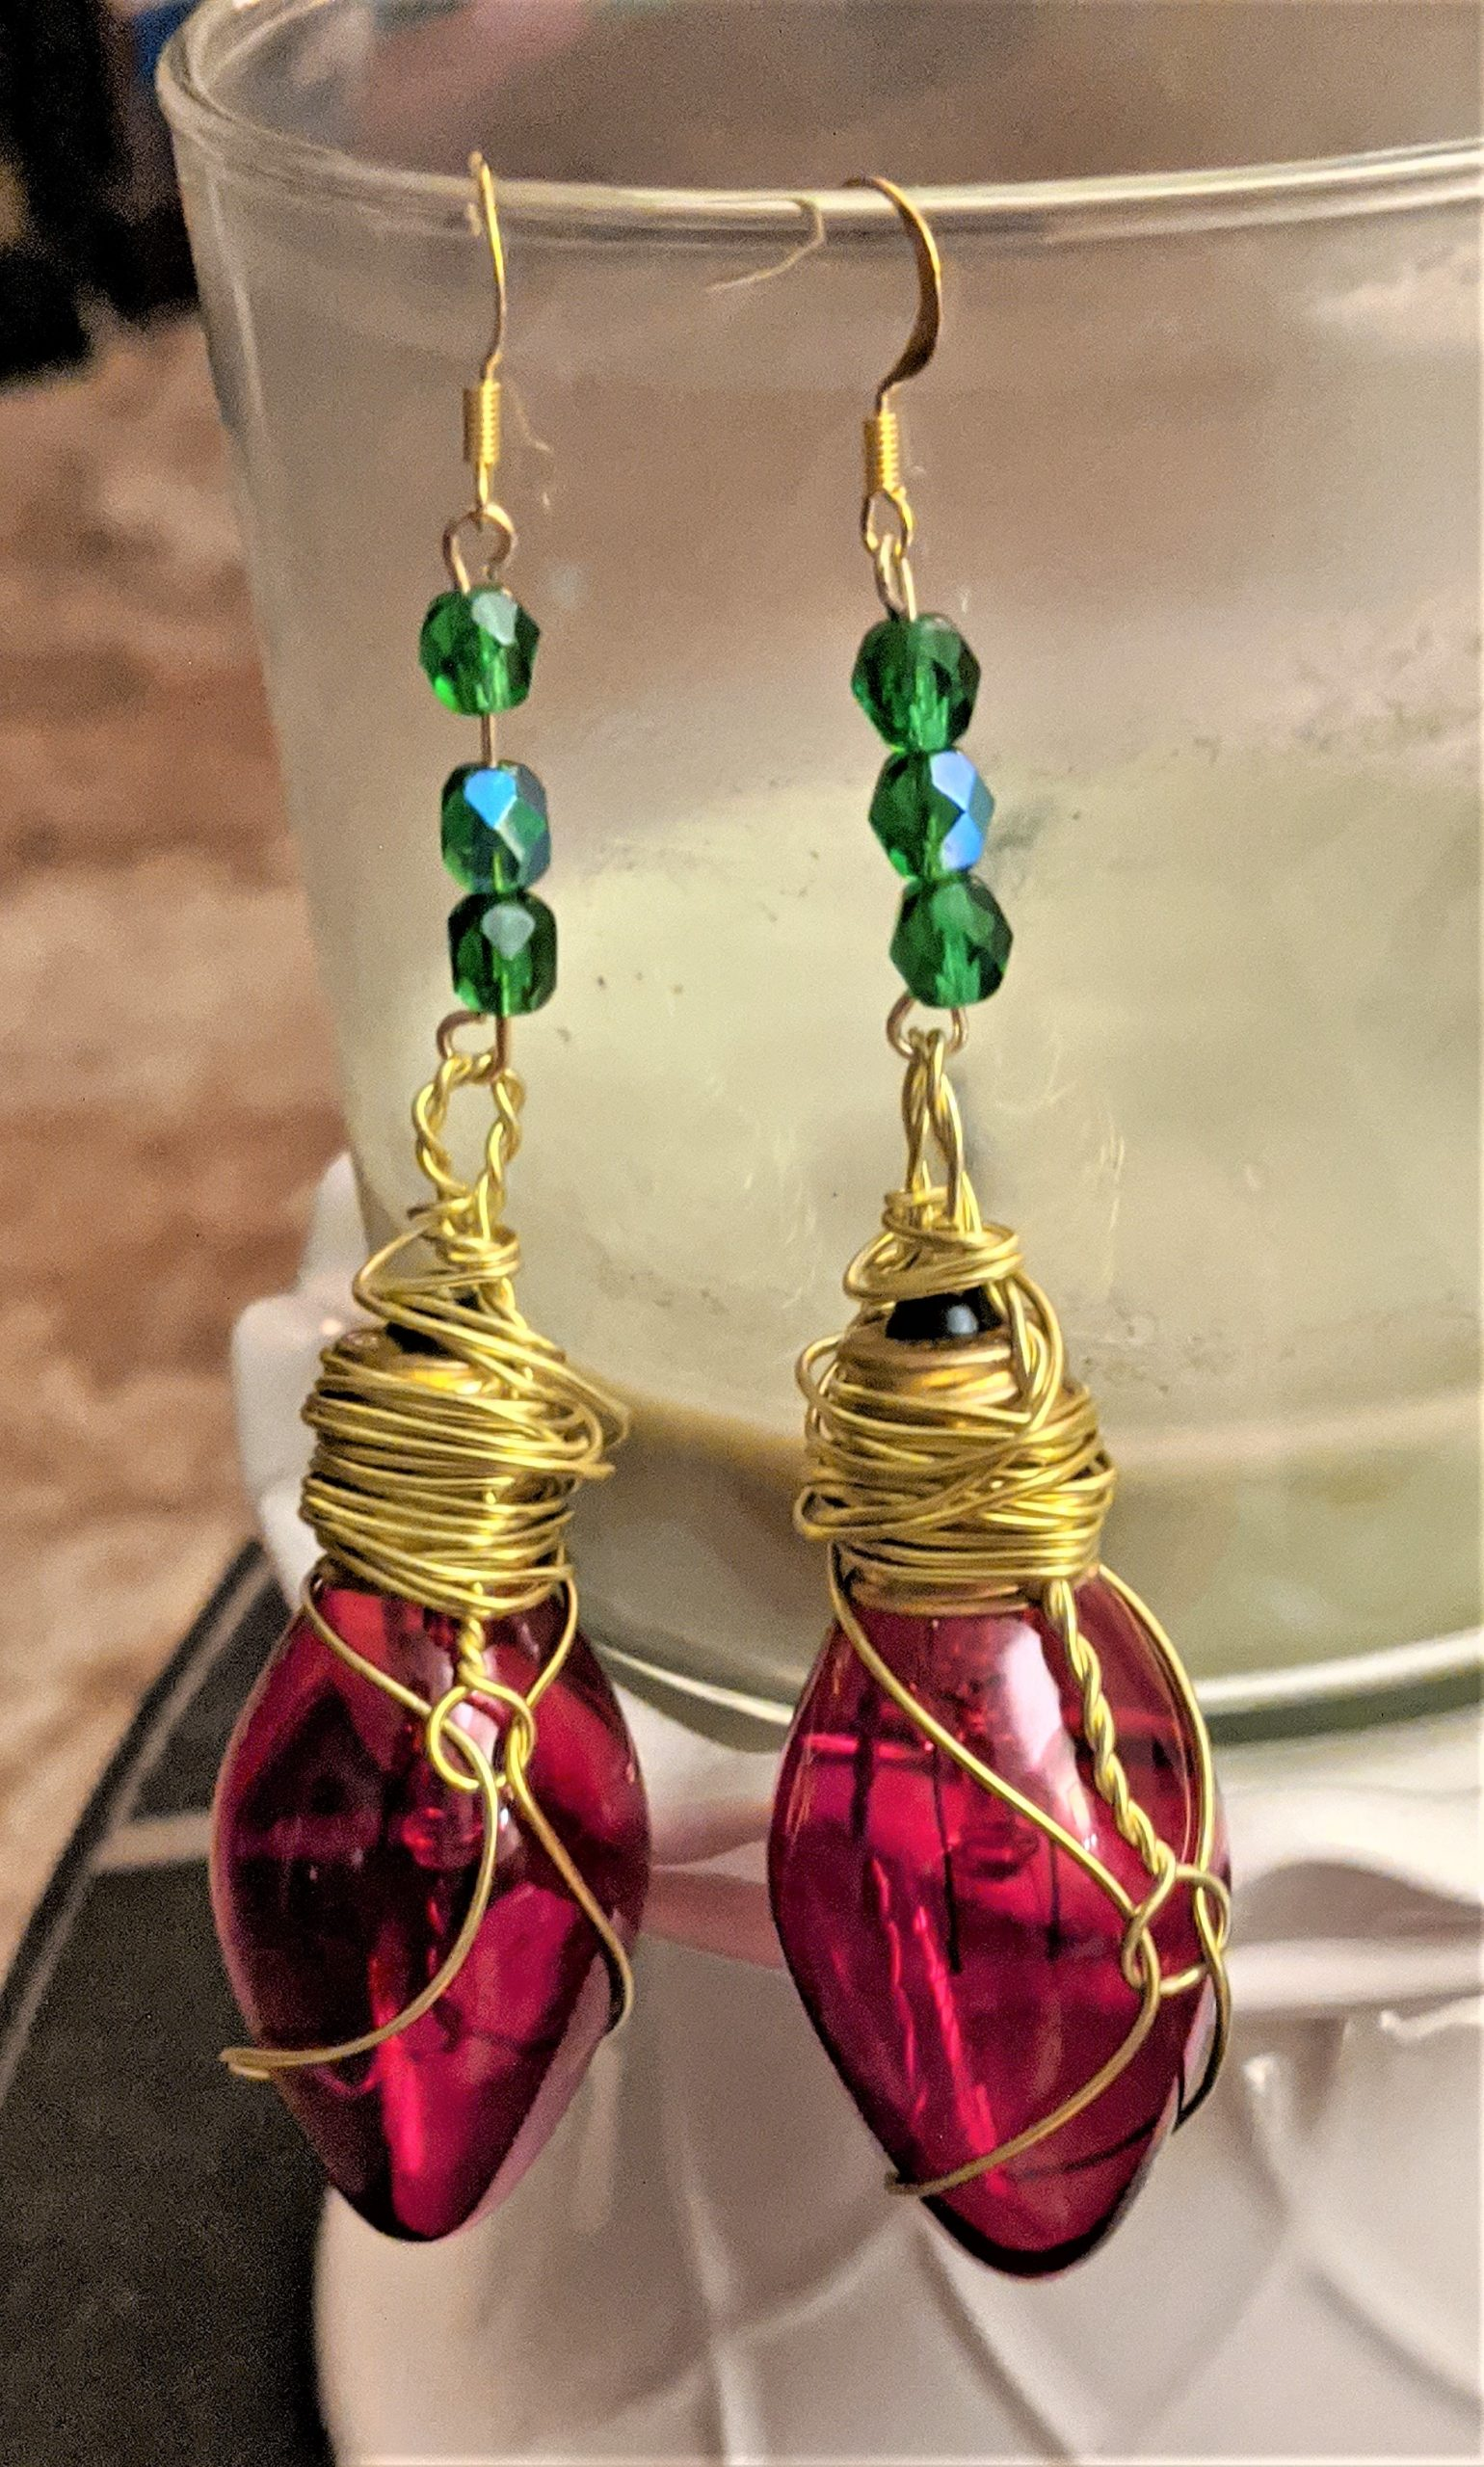 Just for reference, this is what your Christmas Earrings will look like when done!